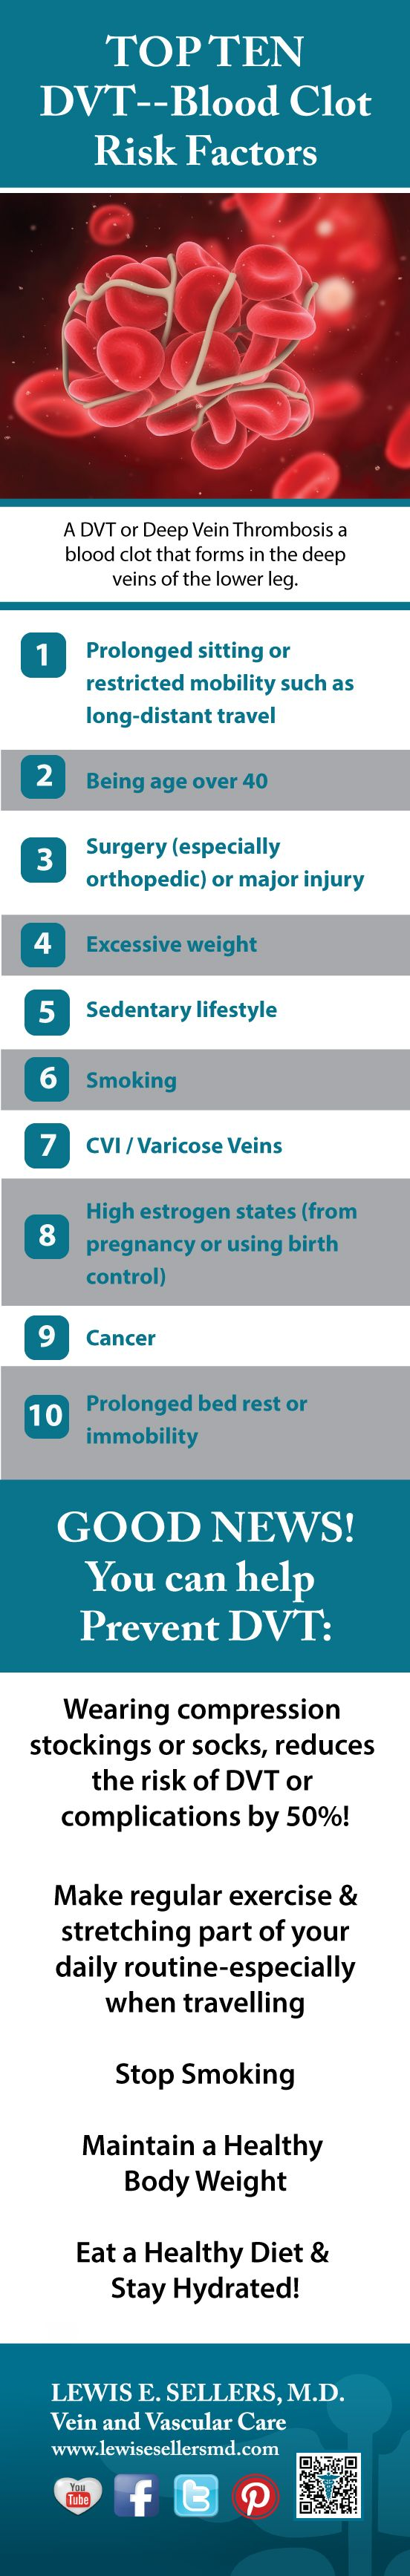 A DVT or Deep Vein Thrombosis a blood clot that forms in the deep veins of the lower leg. Here are 10 DVT #blood #clot #risk factors and some solutions for prevention!  Lewis E. Sellers MD www.lewisesellersmd.com